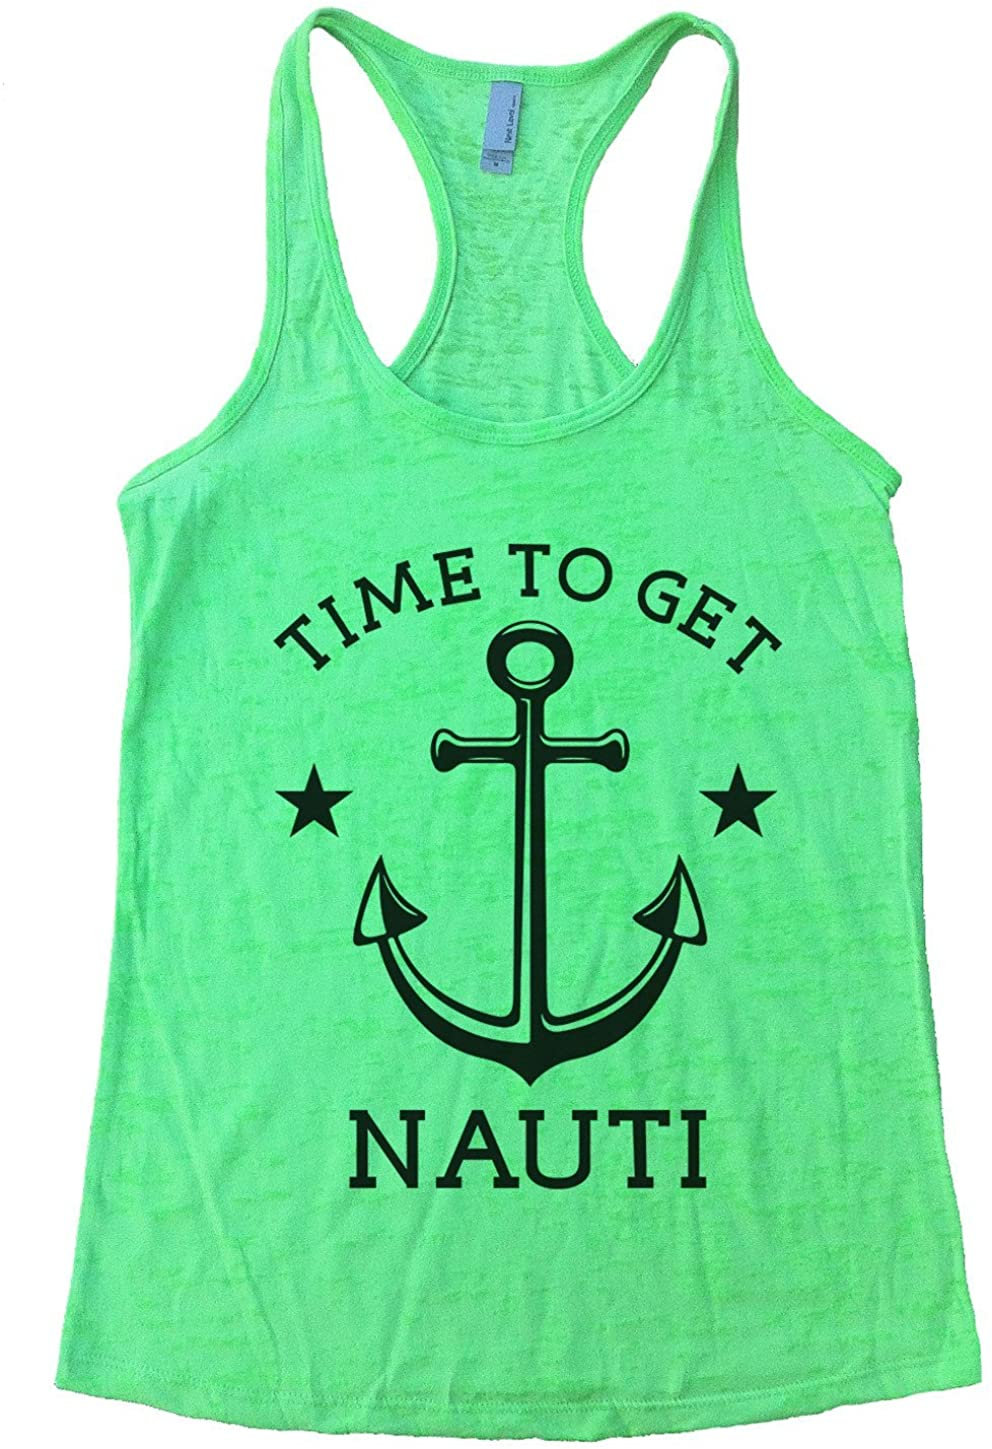 Summer Lake Tank Top Time to Get Nauti Anchor Tee Girls Party Nautical Boating